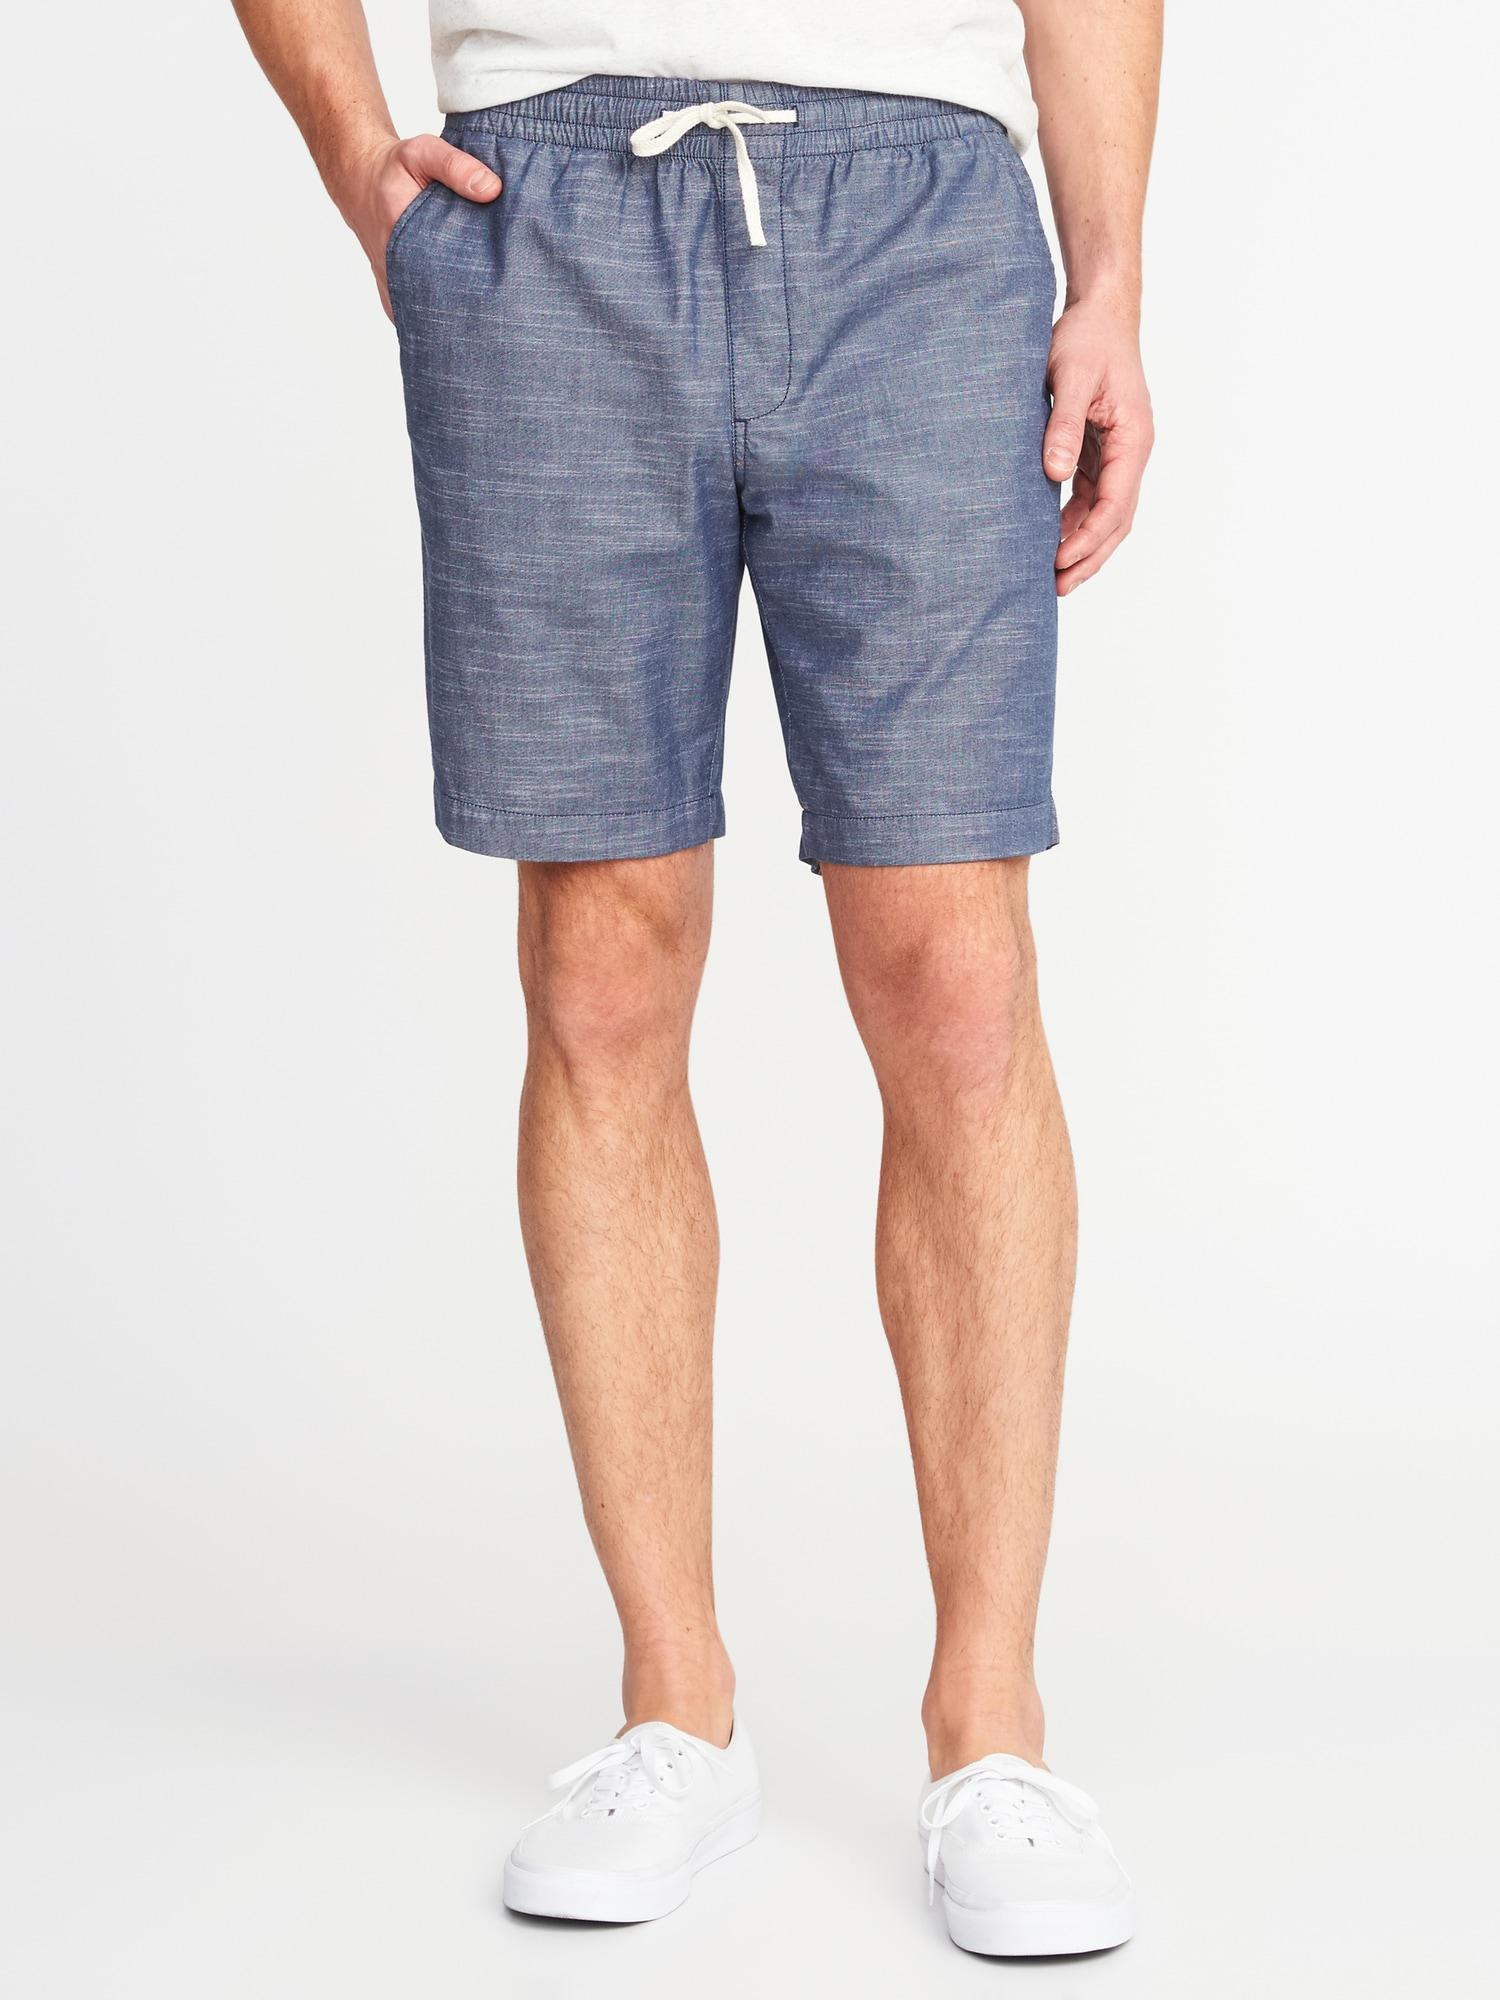 26281ad8fbc0 Old Navy Built-in Flex Drawstring Jogger Shorts in Blue for Men - Lyst